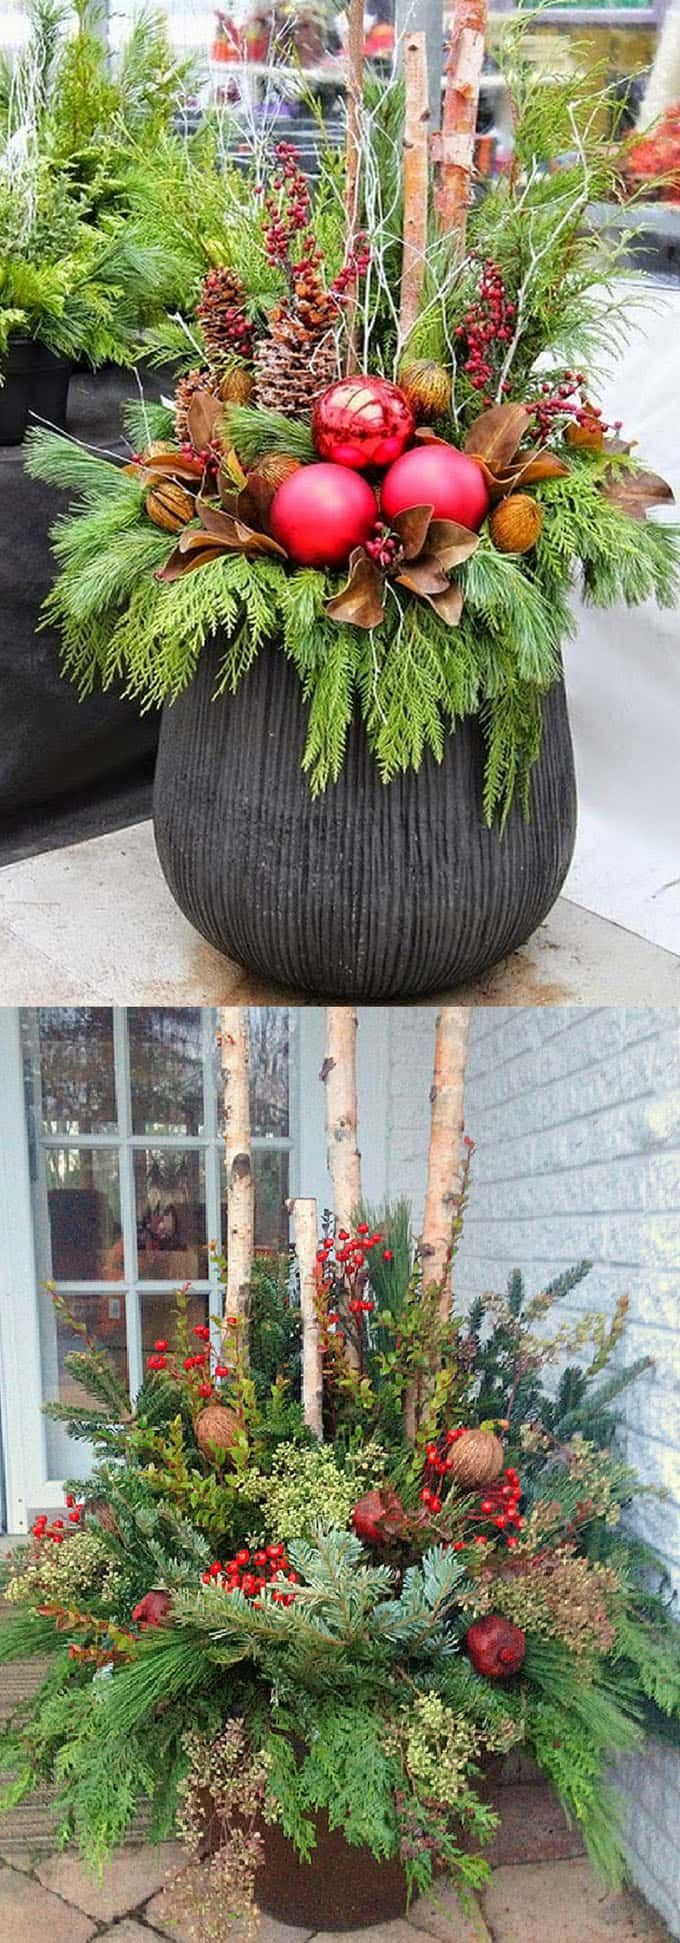 How to create colorful winter outdoor planters and beautiful Christmas planters …